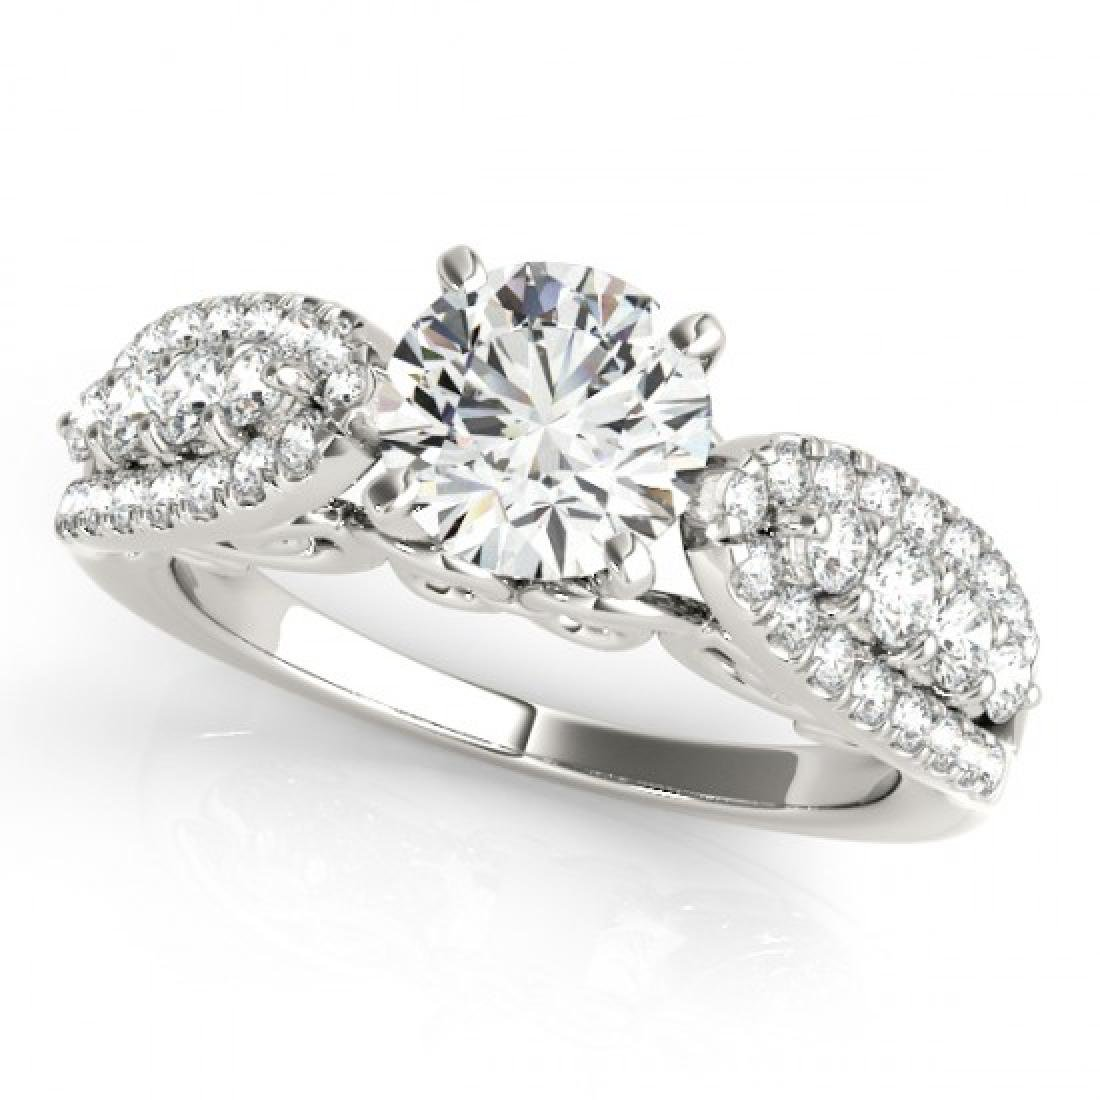 1.45 CTW Certified VS/SI Diamond Solitaire Ring 14K